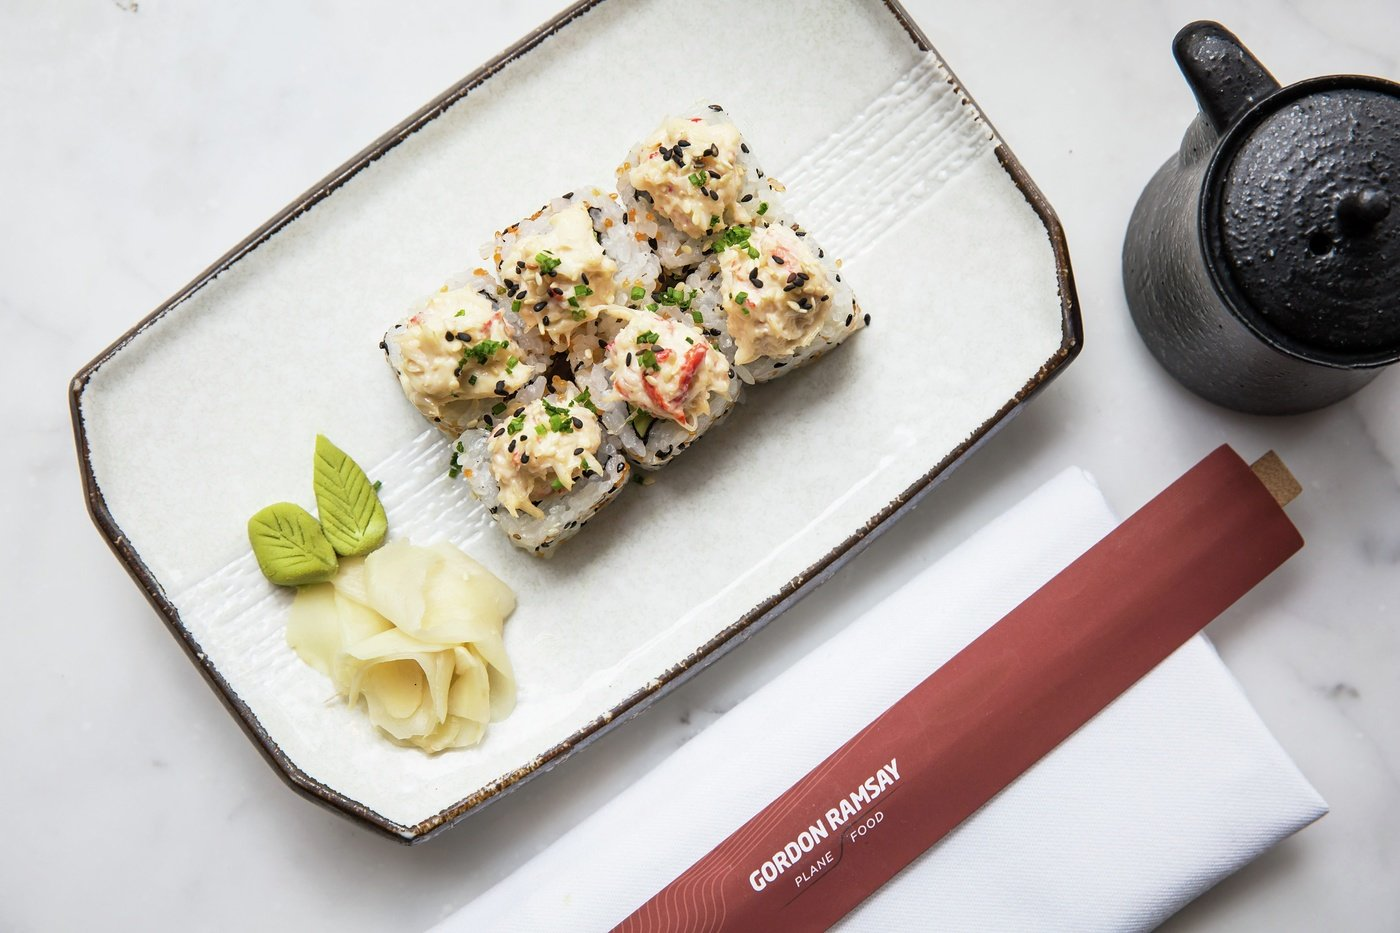 Getting you #ReadyForTakeOff with some delicious California rolls very soon @PlaneFood - I can't wait ! Gx https://t.co/aM41cWjBgS